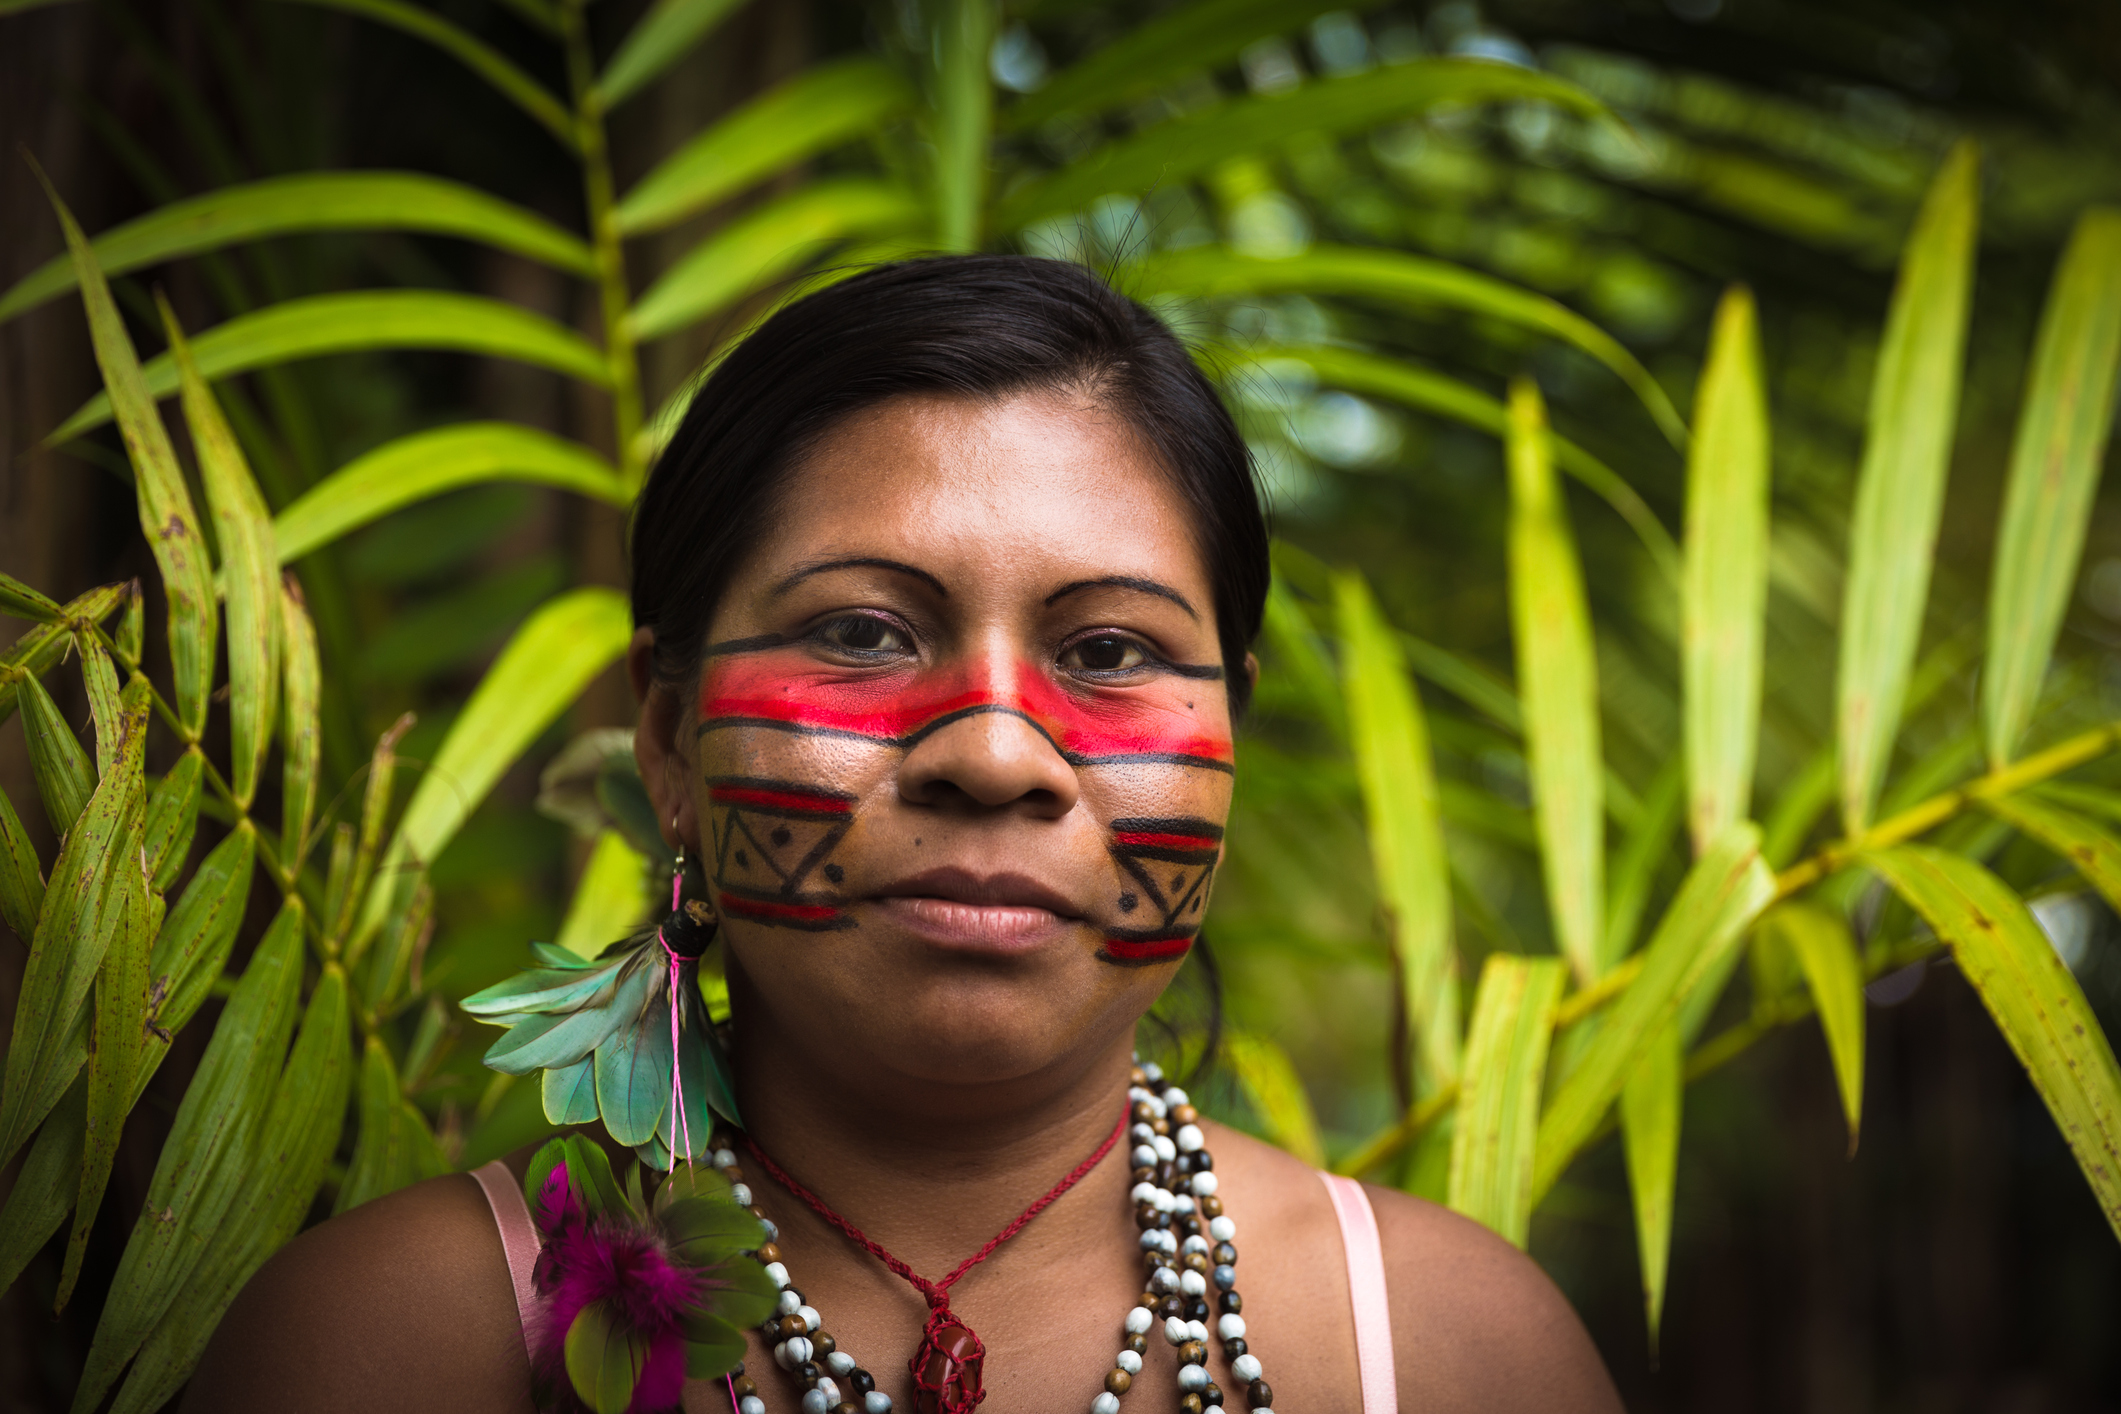 Woman from Tupi Guarani tribe in Manaus, Brazil by filipefrazao